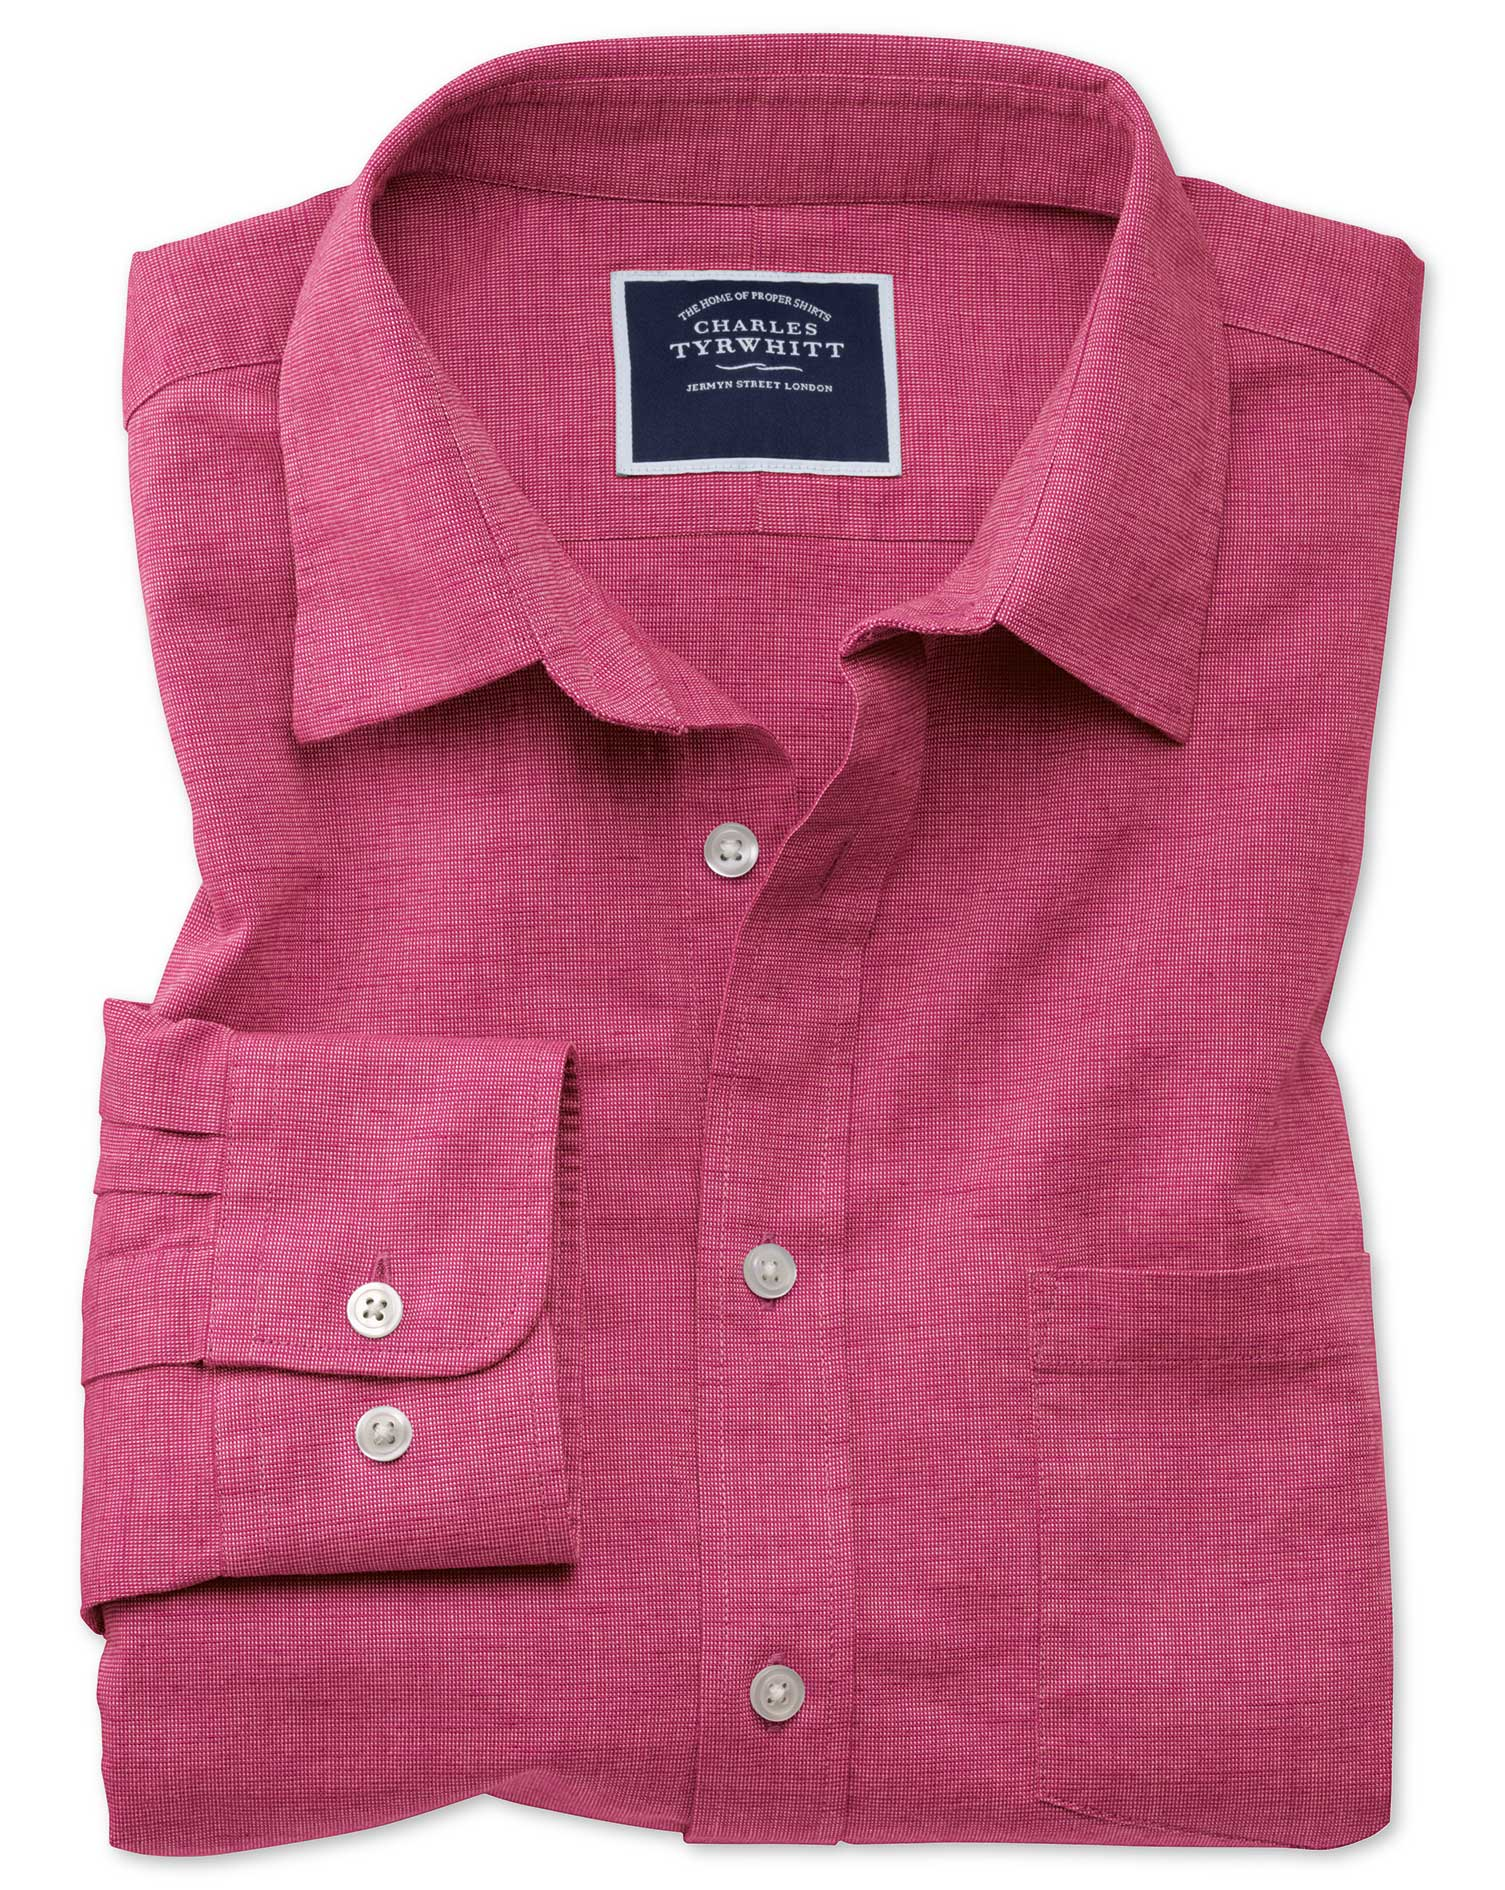 Classic Fit Cotton Linen Bright Pink Plain Shirt Single Cuff Size XL by Charles Tyrwhitt